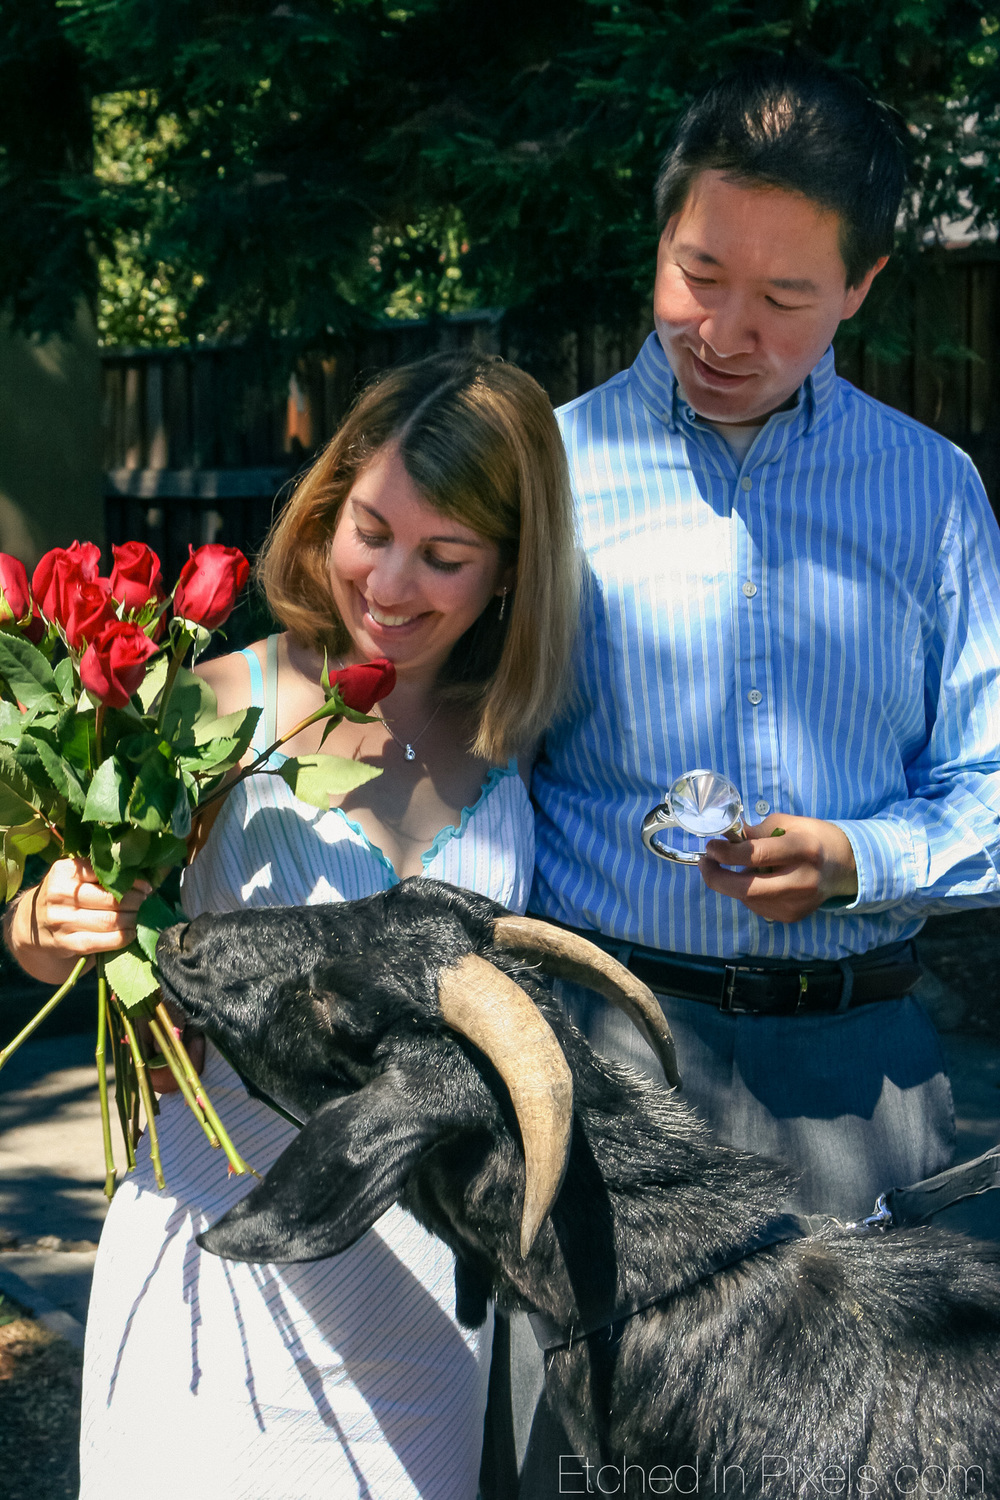 Goat eats roses from woman's hand.